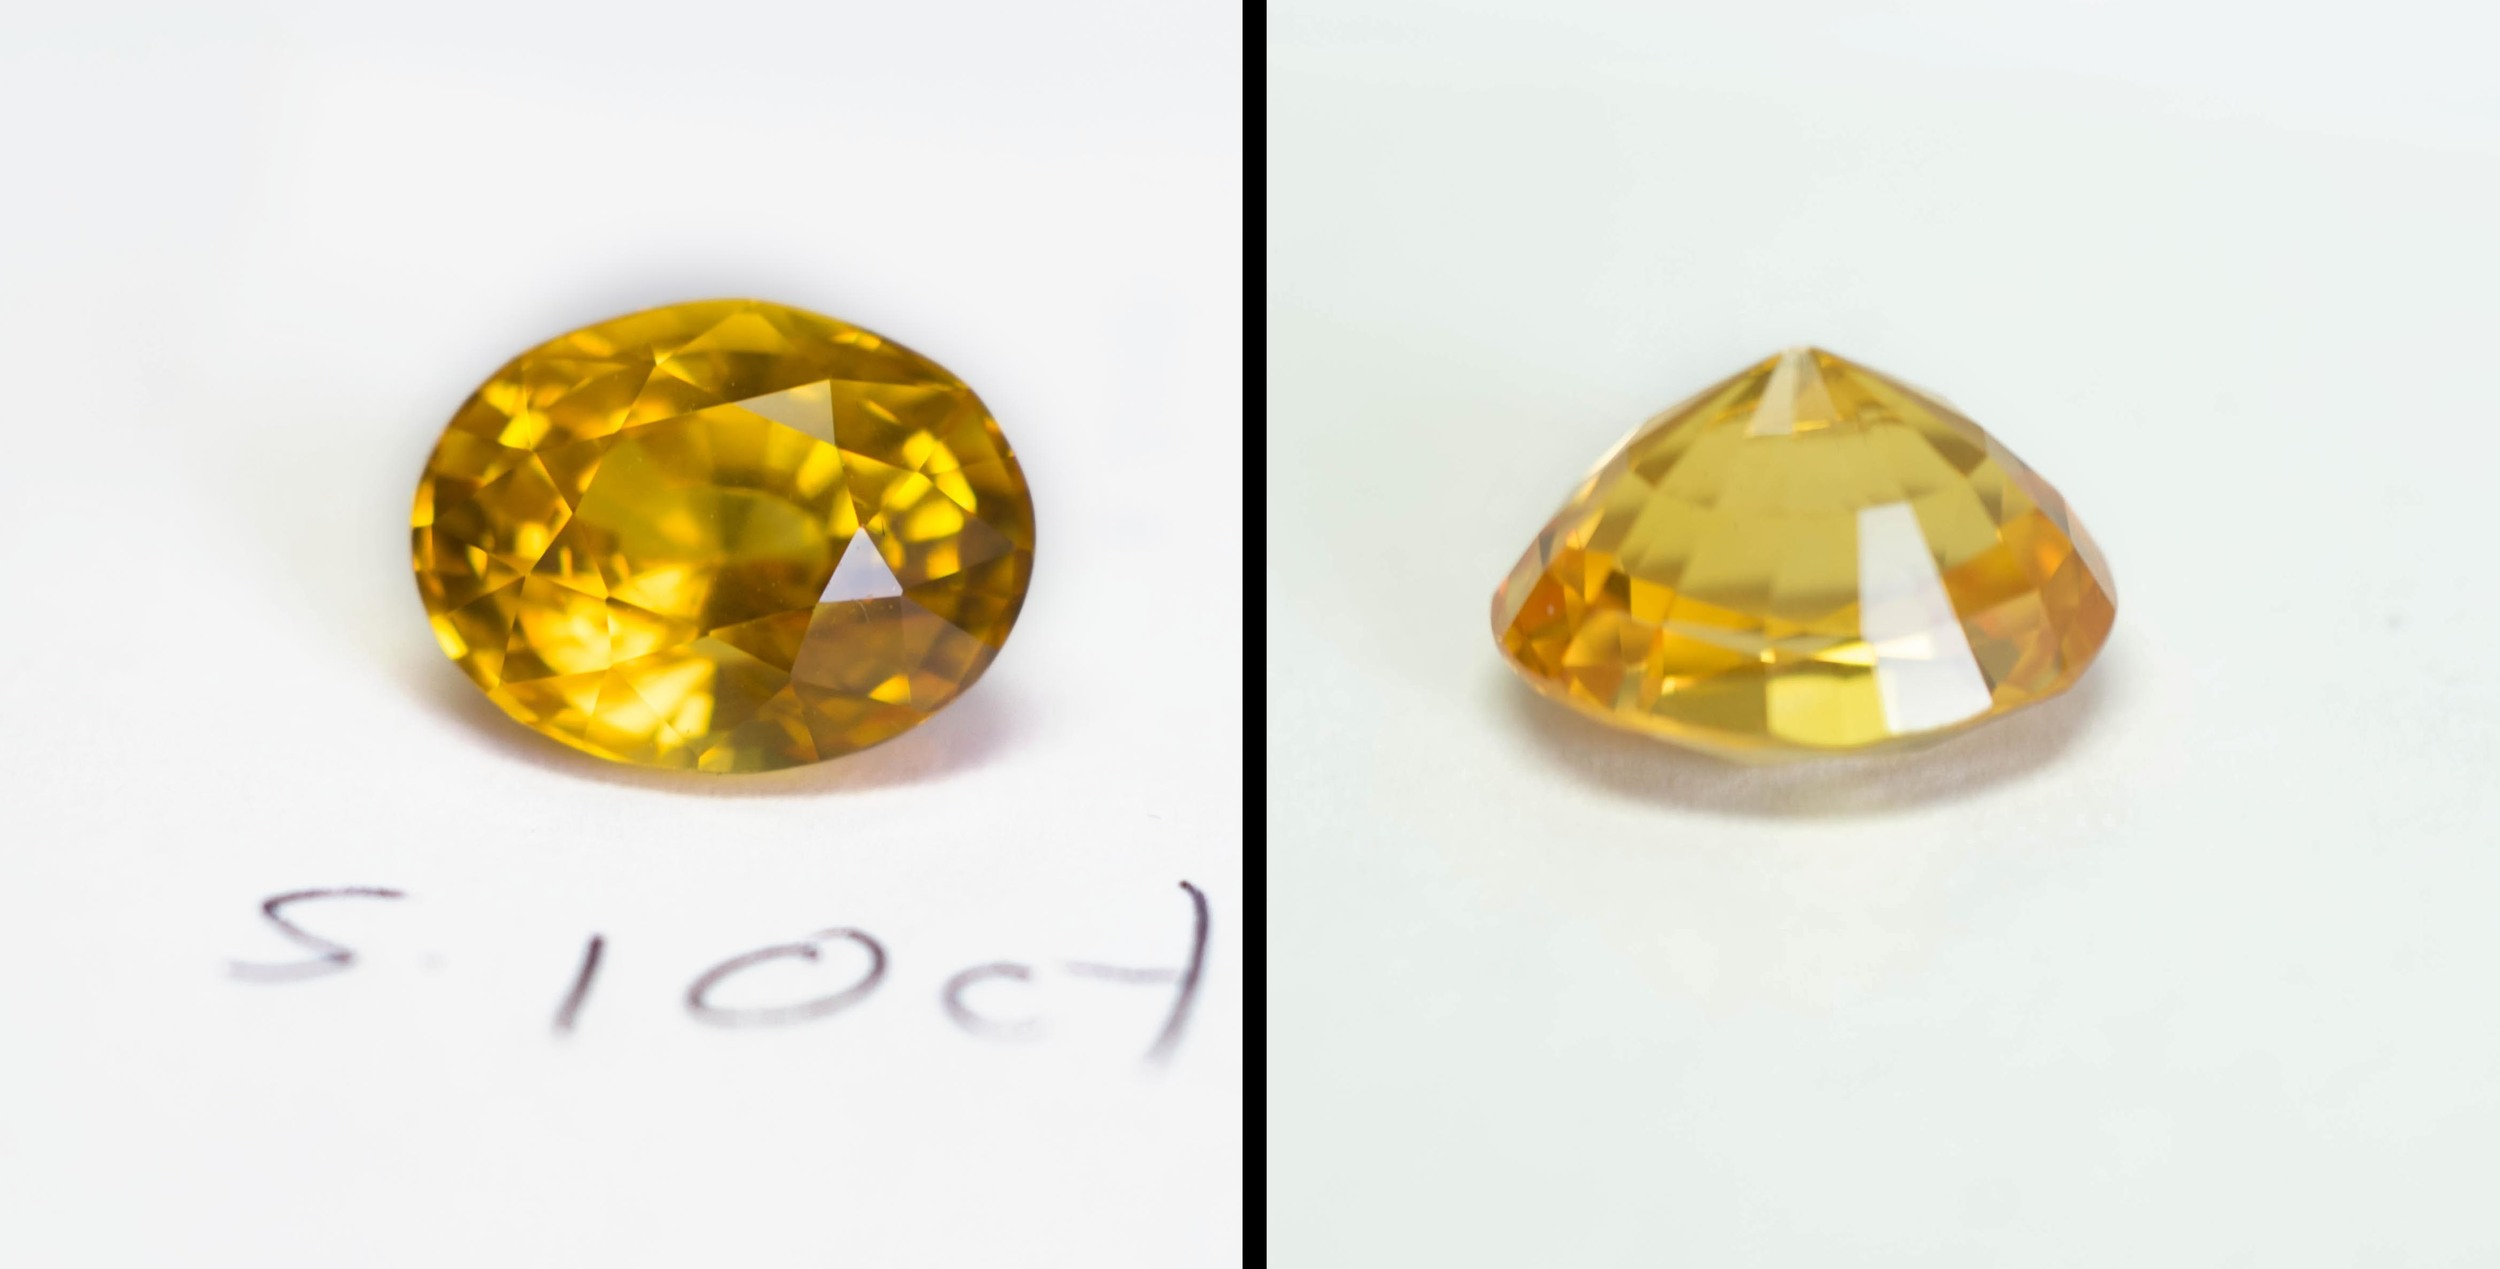 5.10ct Yellow Sapphire from Sri Lanka